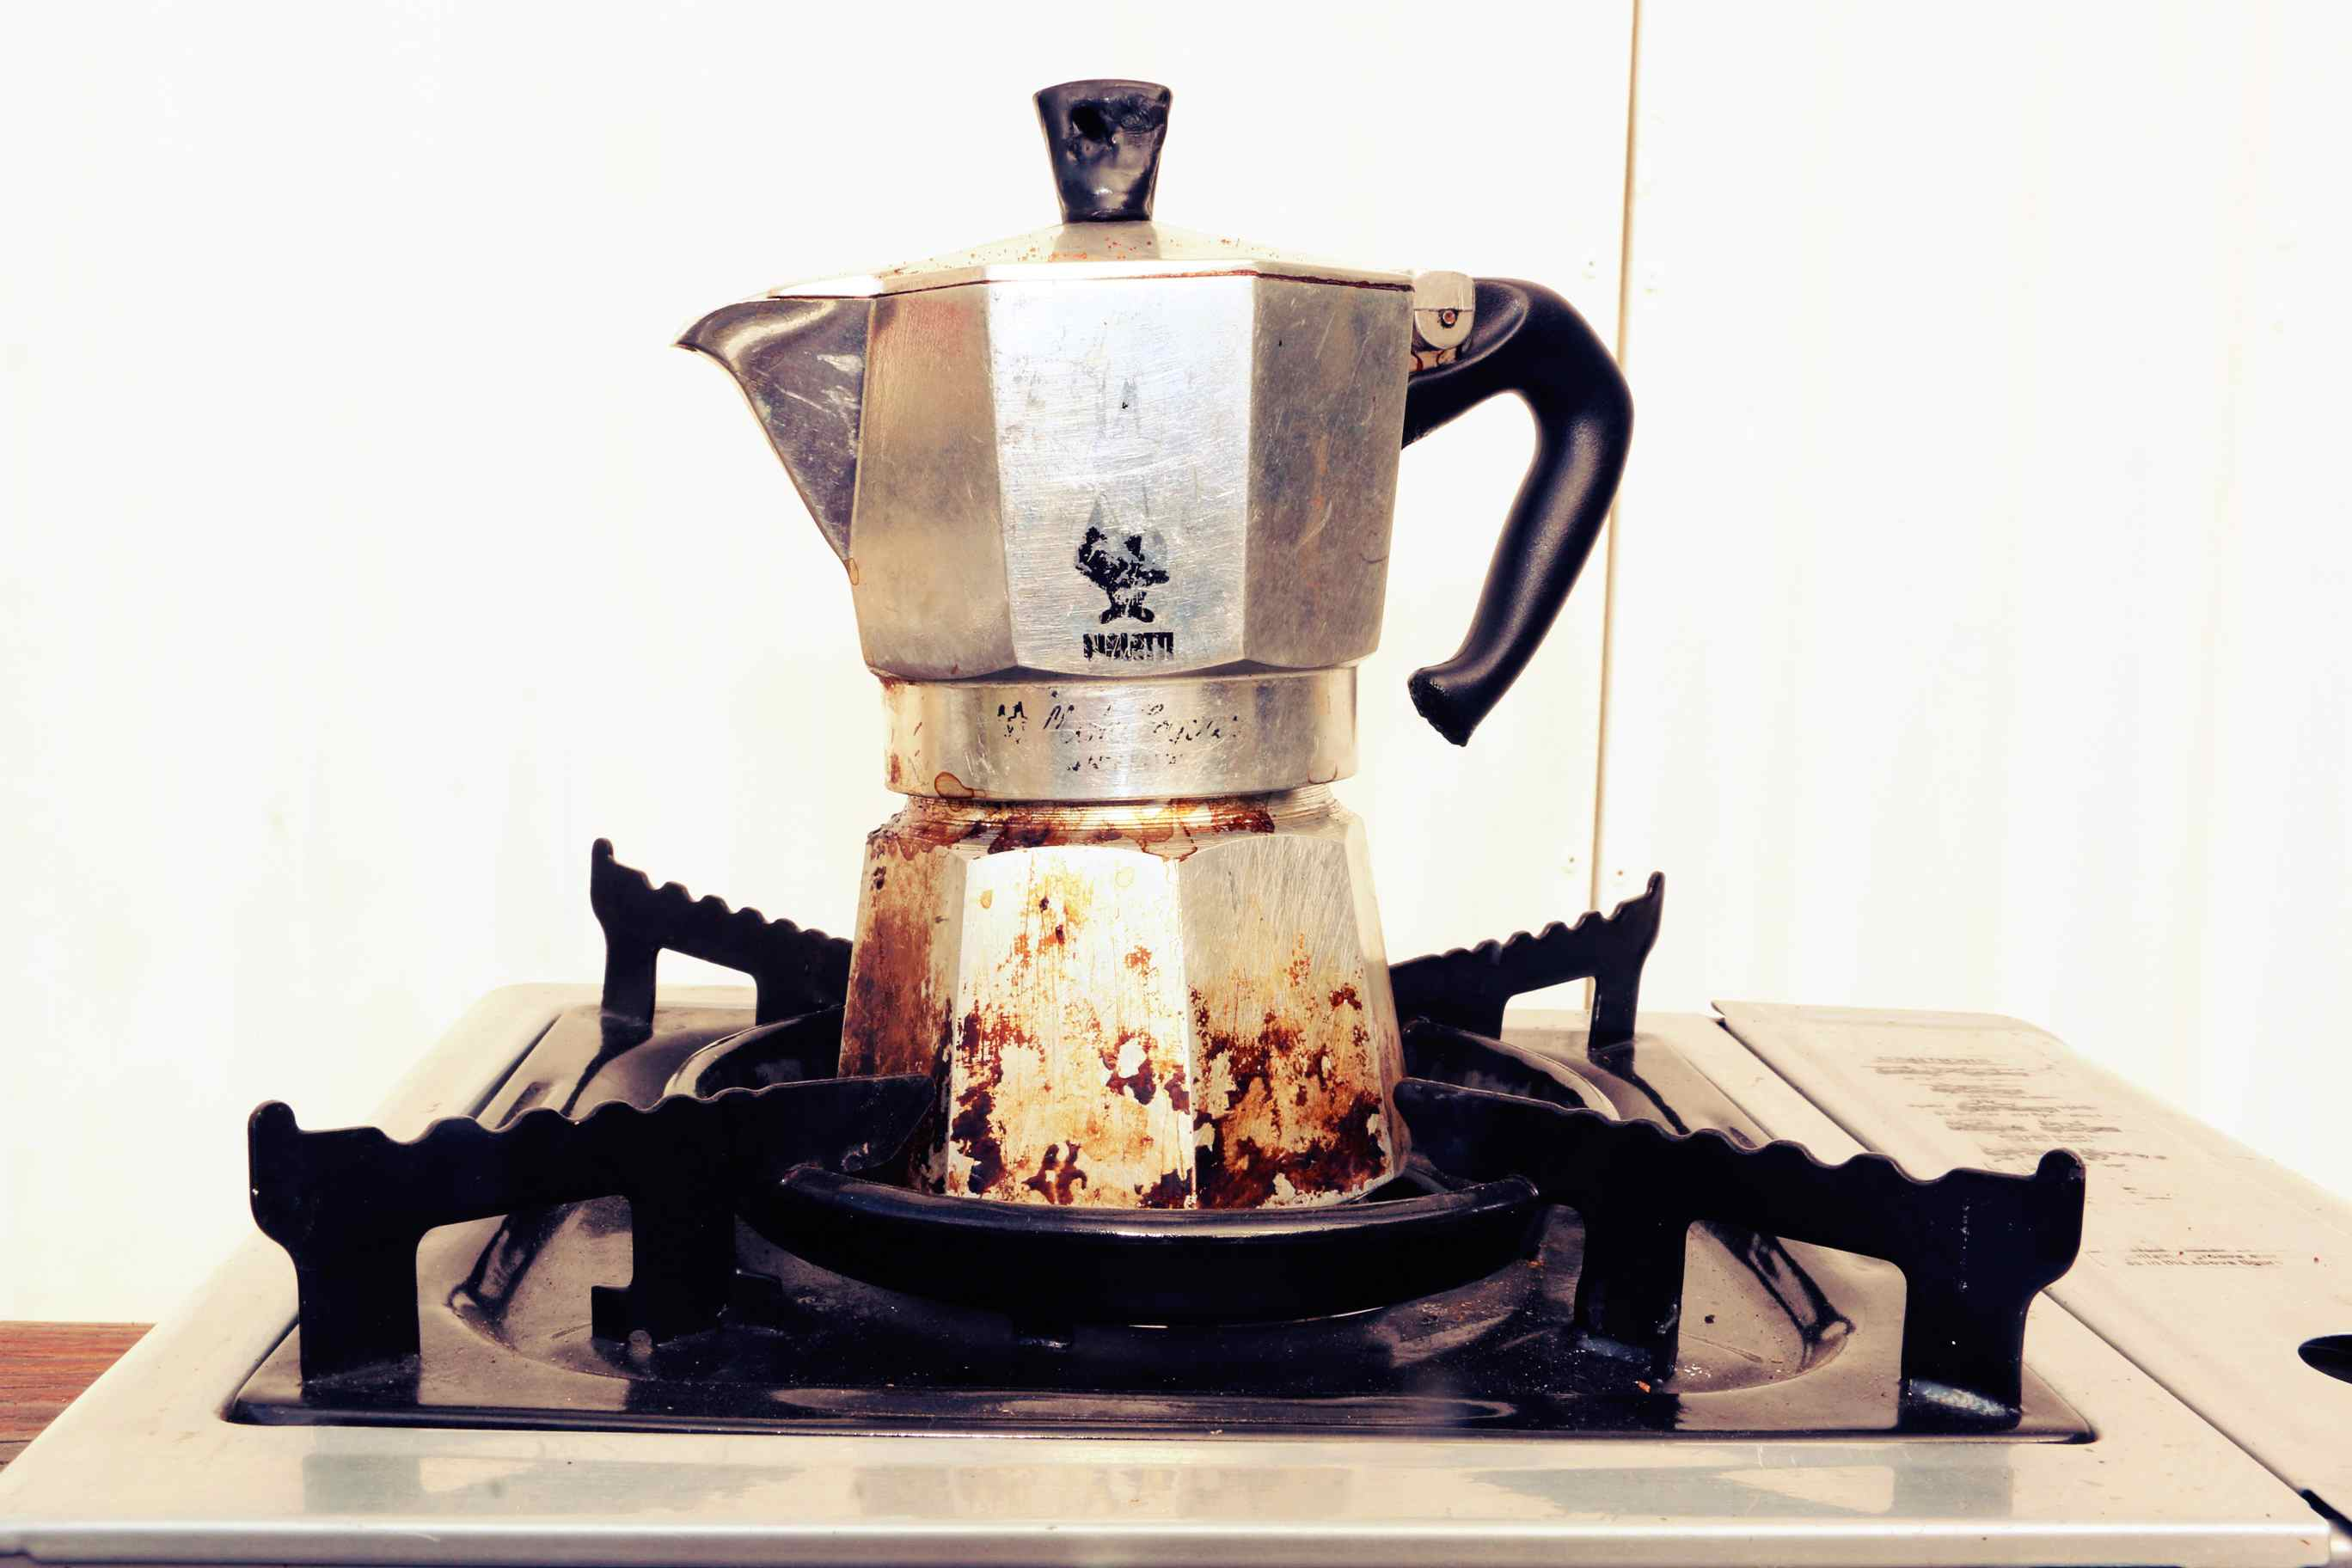 My well worn Bialetti Moka Pot. This stove top coffee pot is the original Italian way to make espresso style coffee. It was a present from an Italian friend and is my favorite way to prepare coffee.